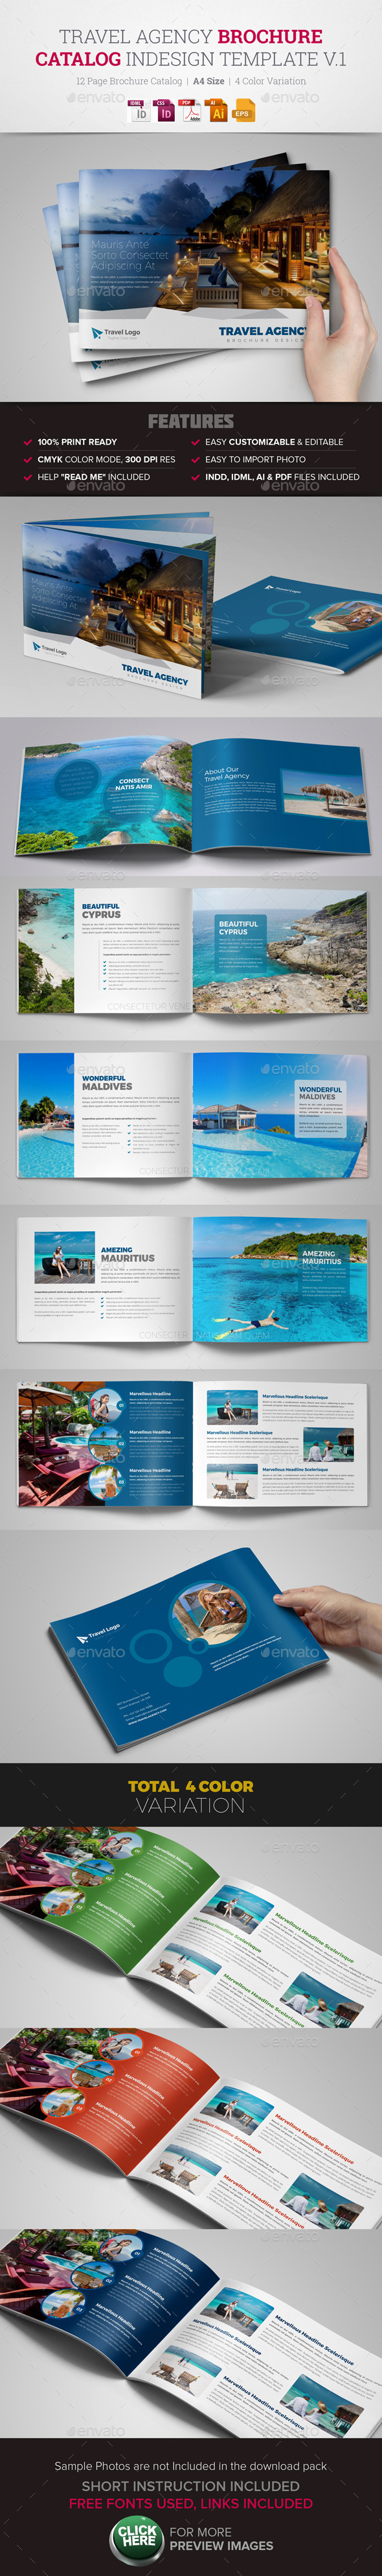 Travel Agency Brochure Catalog - Corporate Brochures